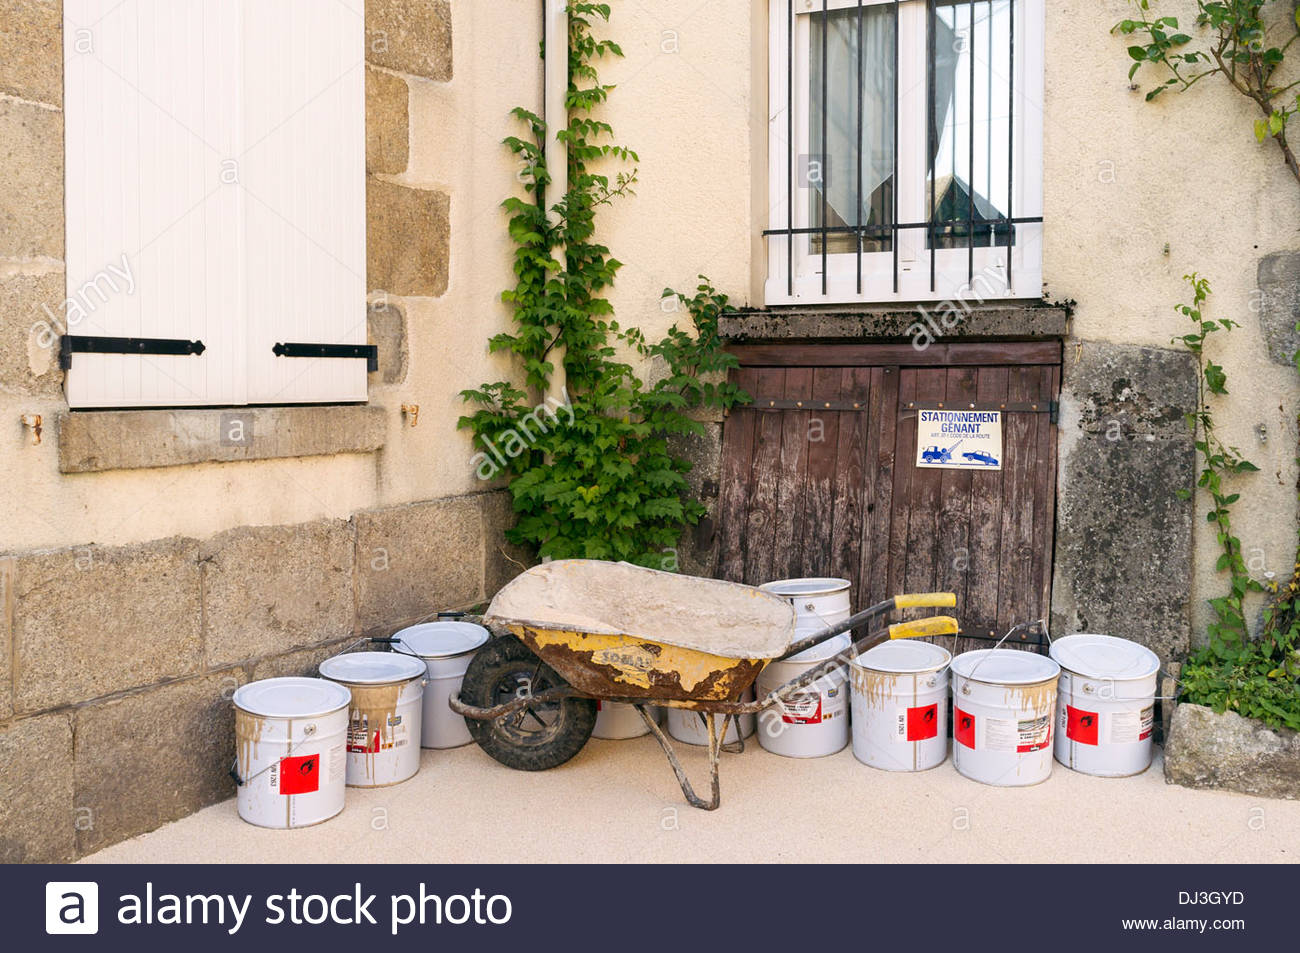 Wheelbarrow and paint buckets outside of a home being renovated, La Souterraine, La Creuse, Limousin, France - Stock Image